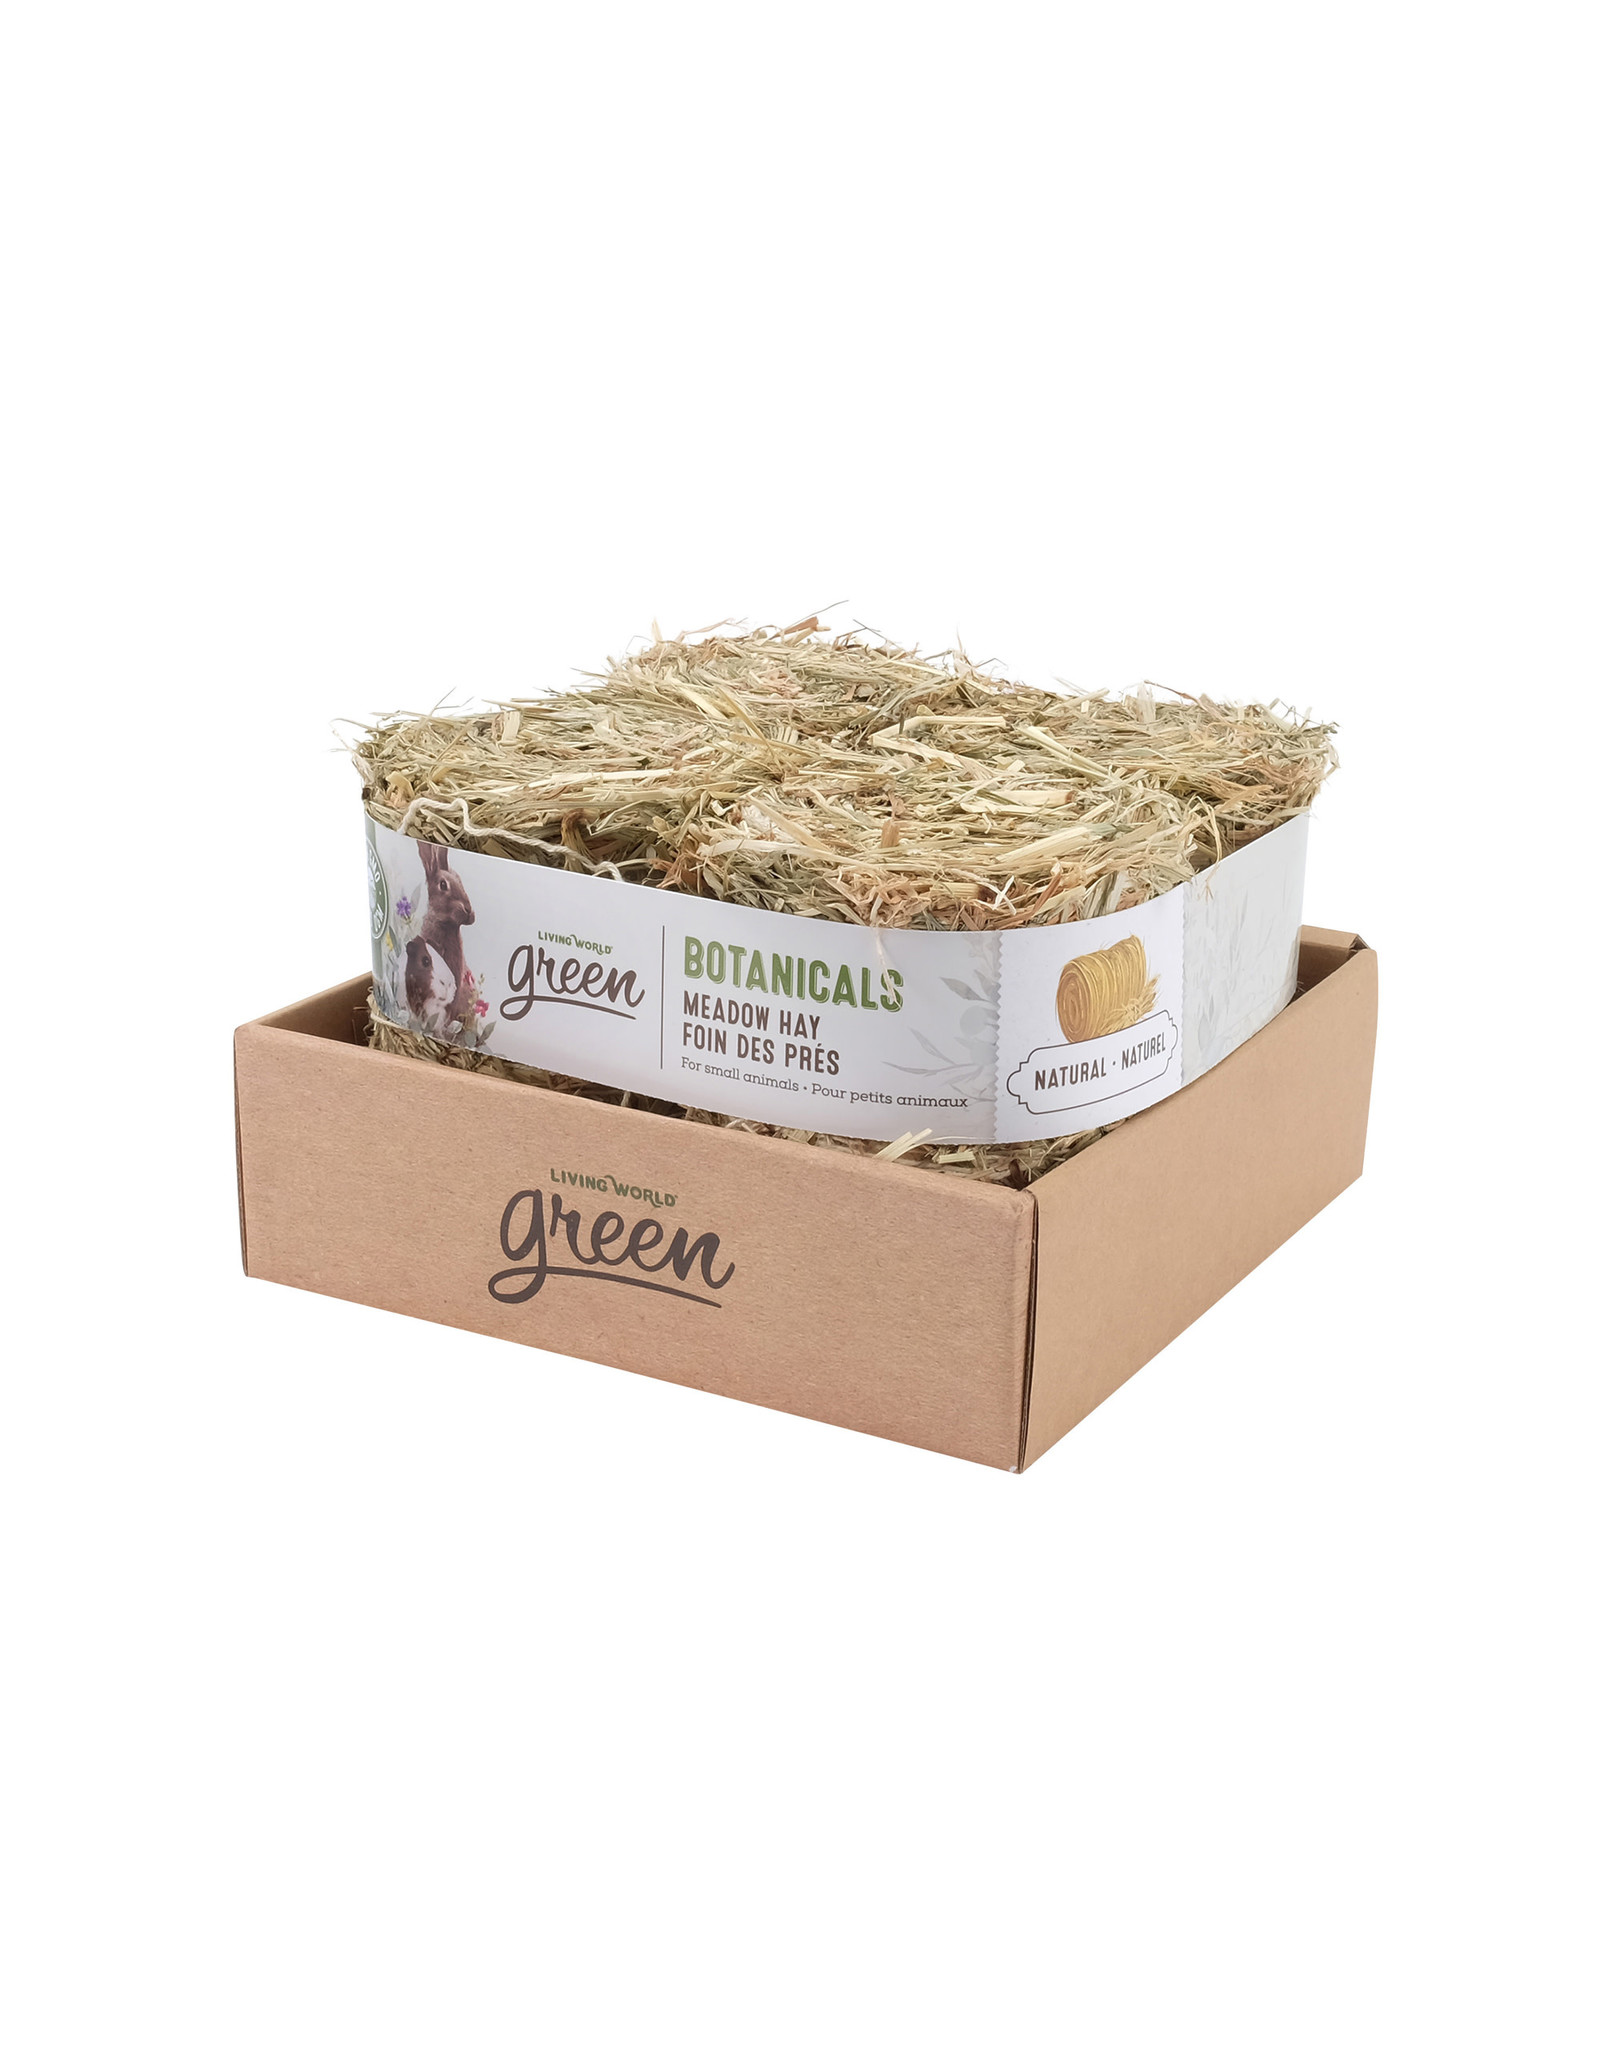 Living World Green Botanicals Meadow Hay Bale - Natural 4x150g